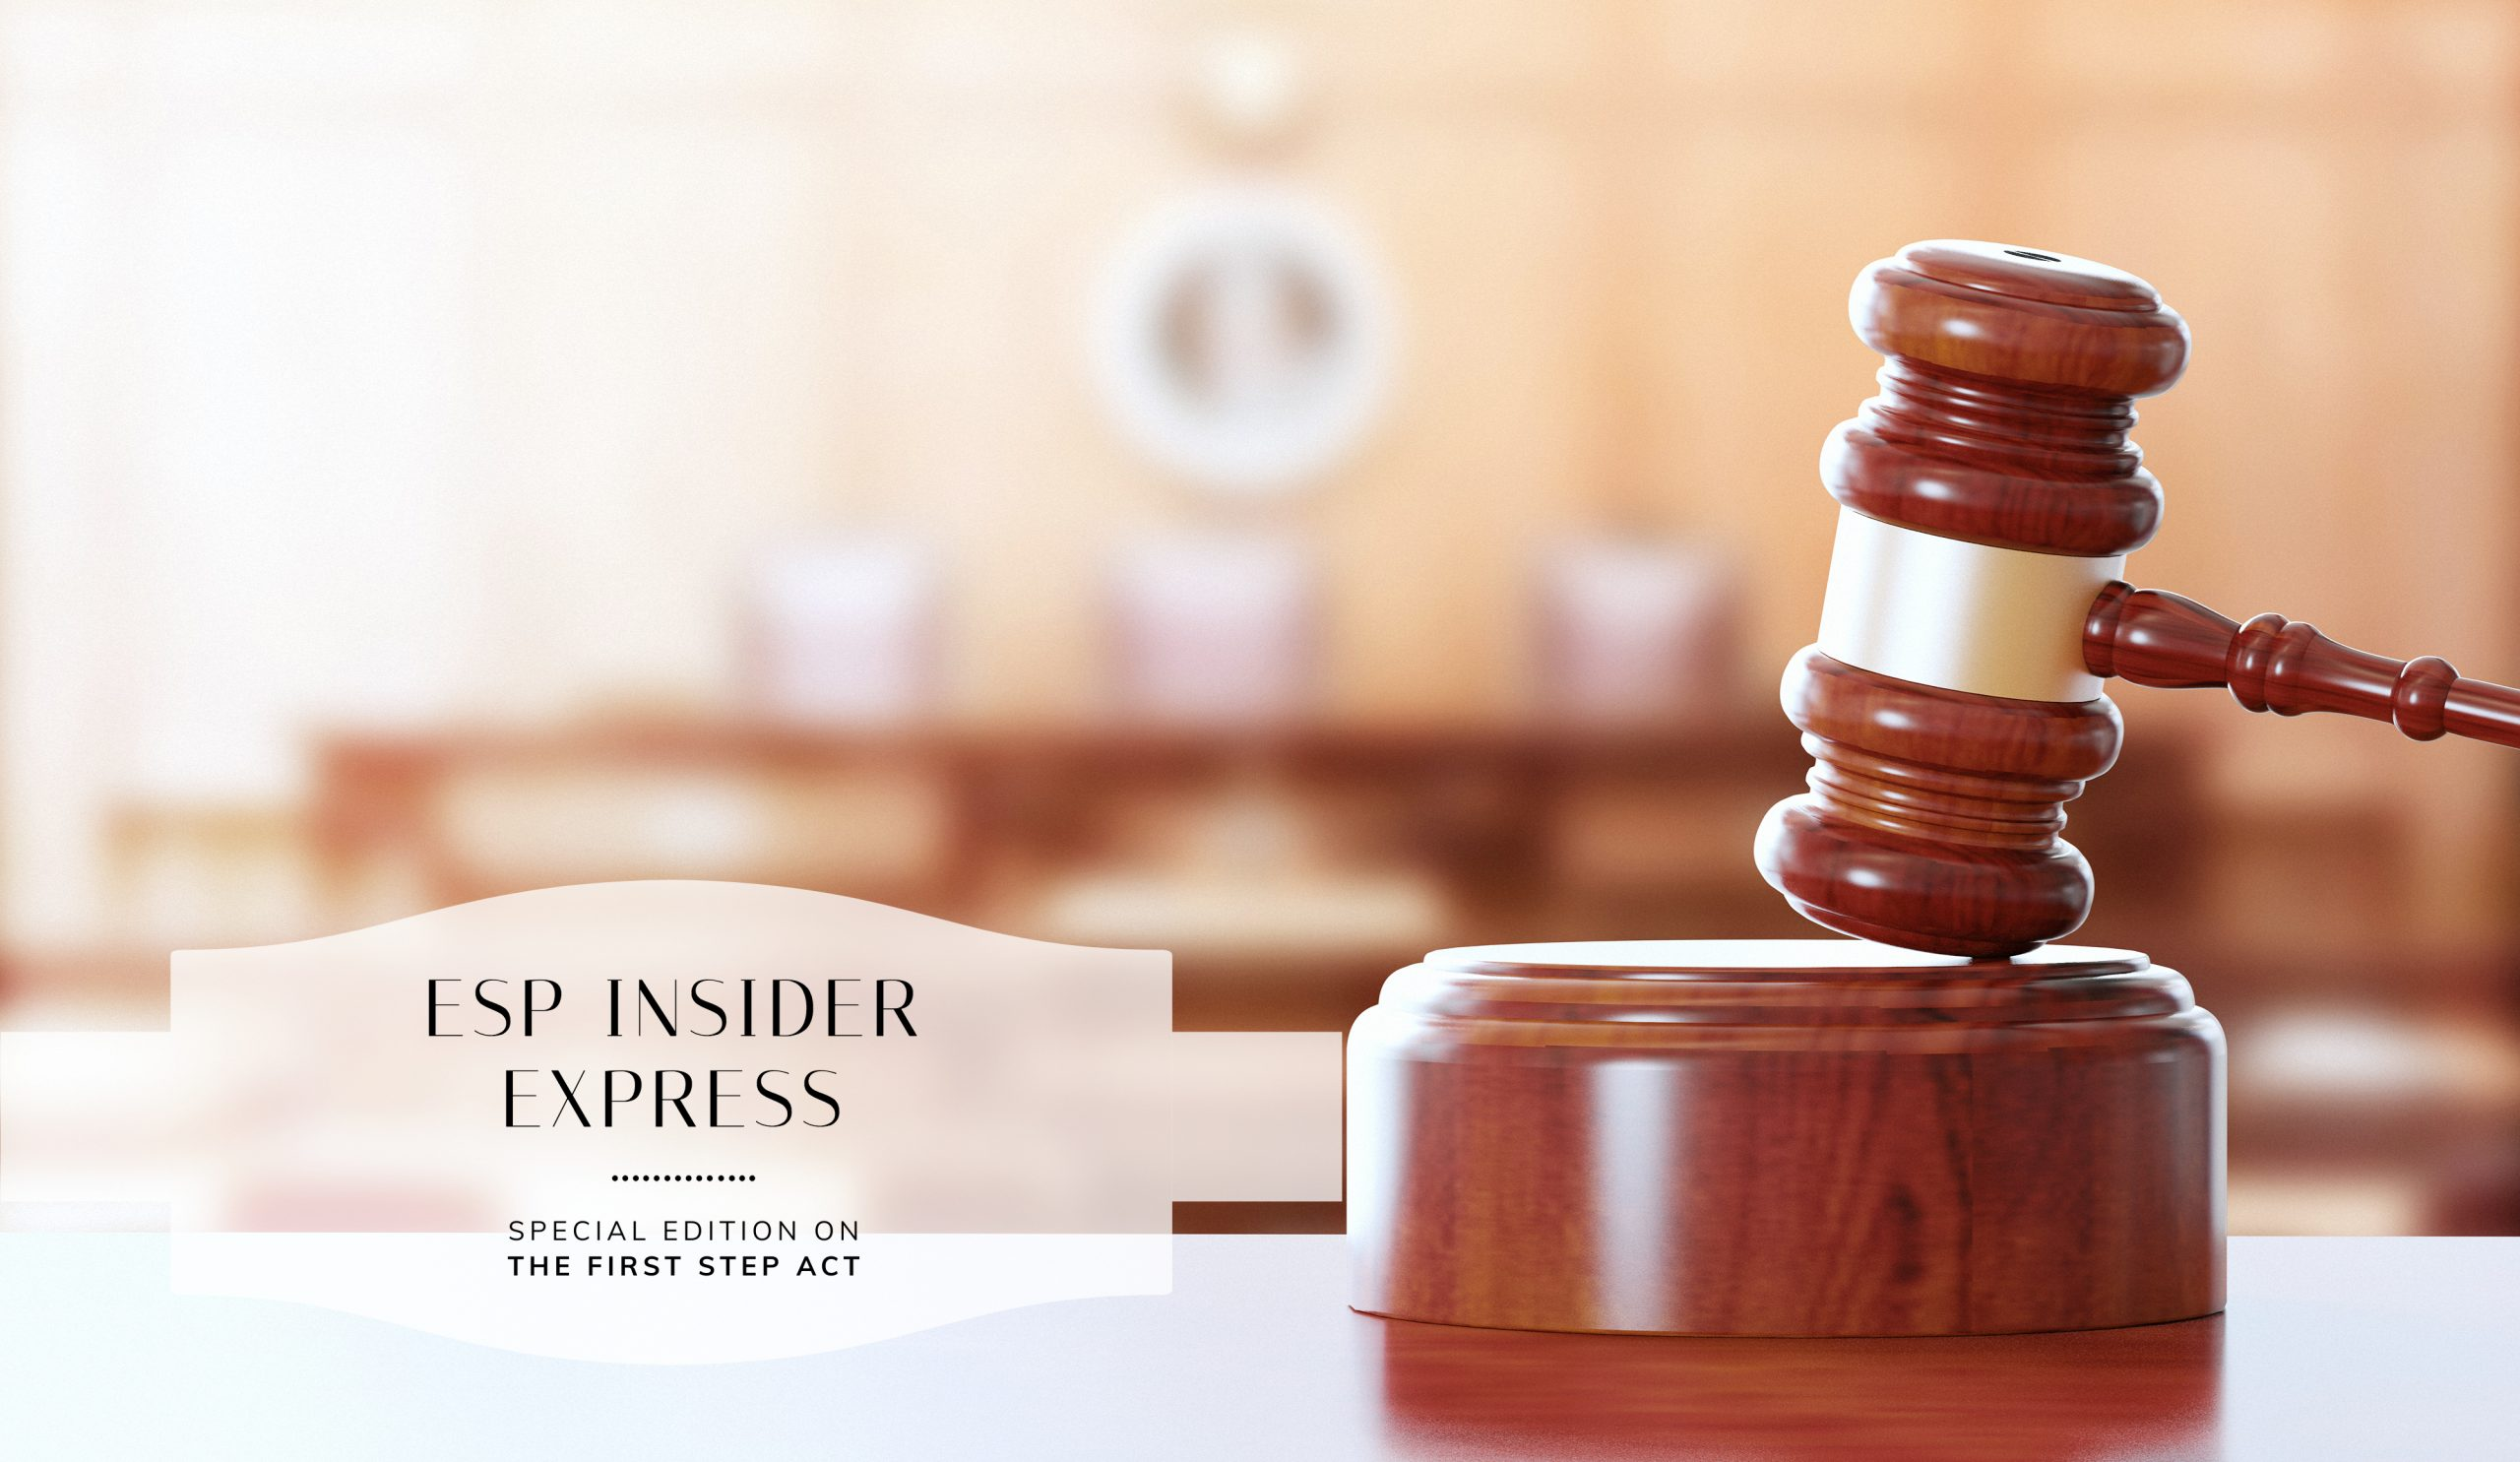 ESP Insider Express | Special Edition on the First Step Act